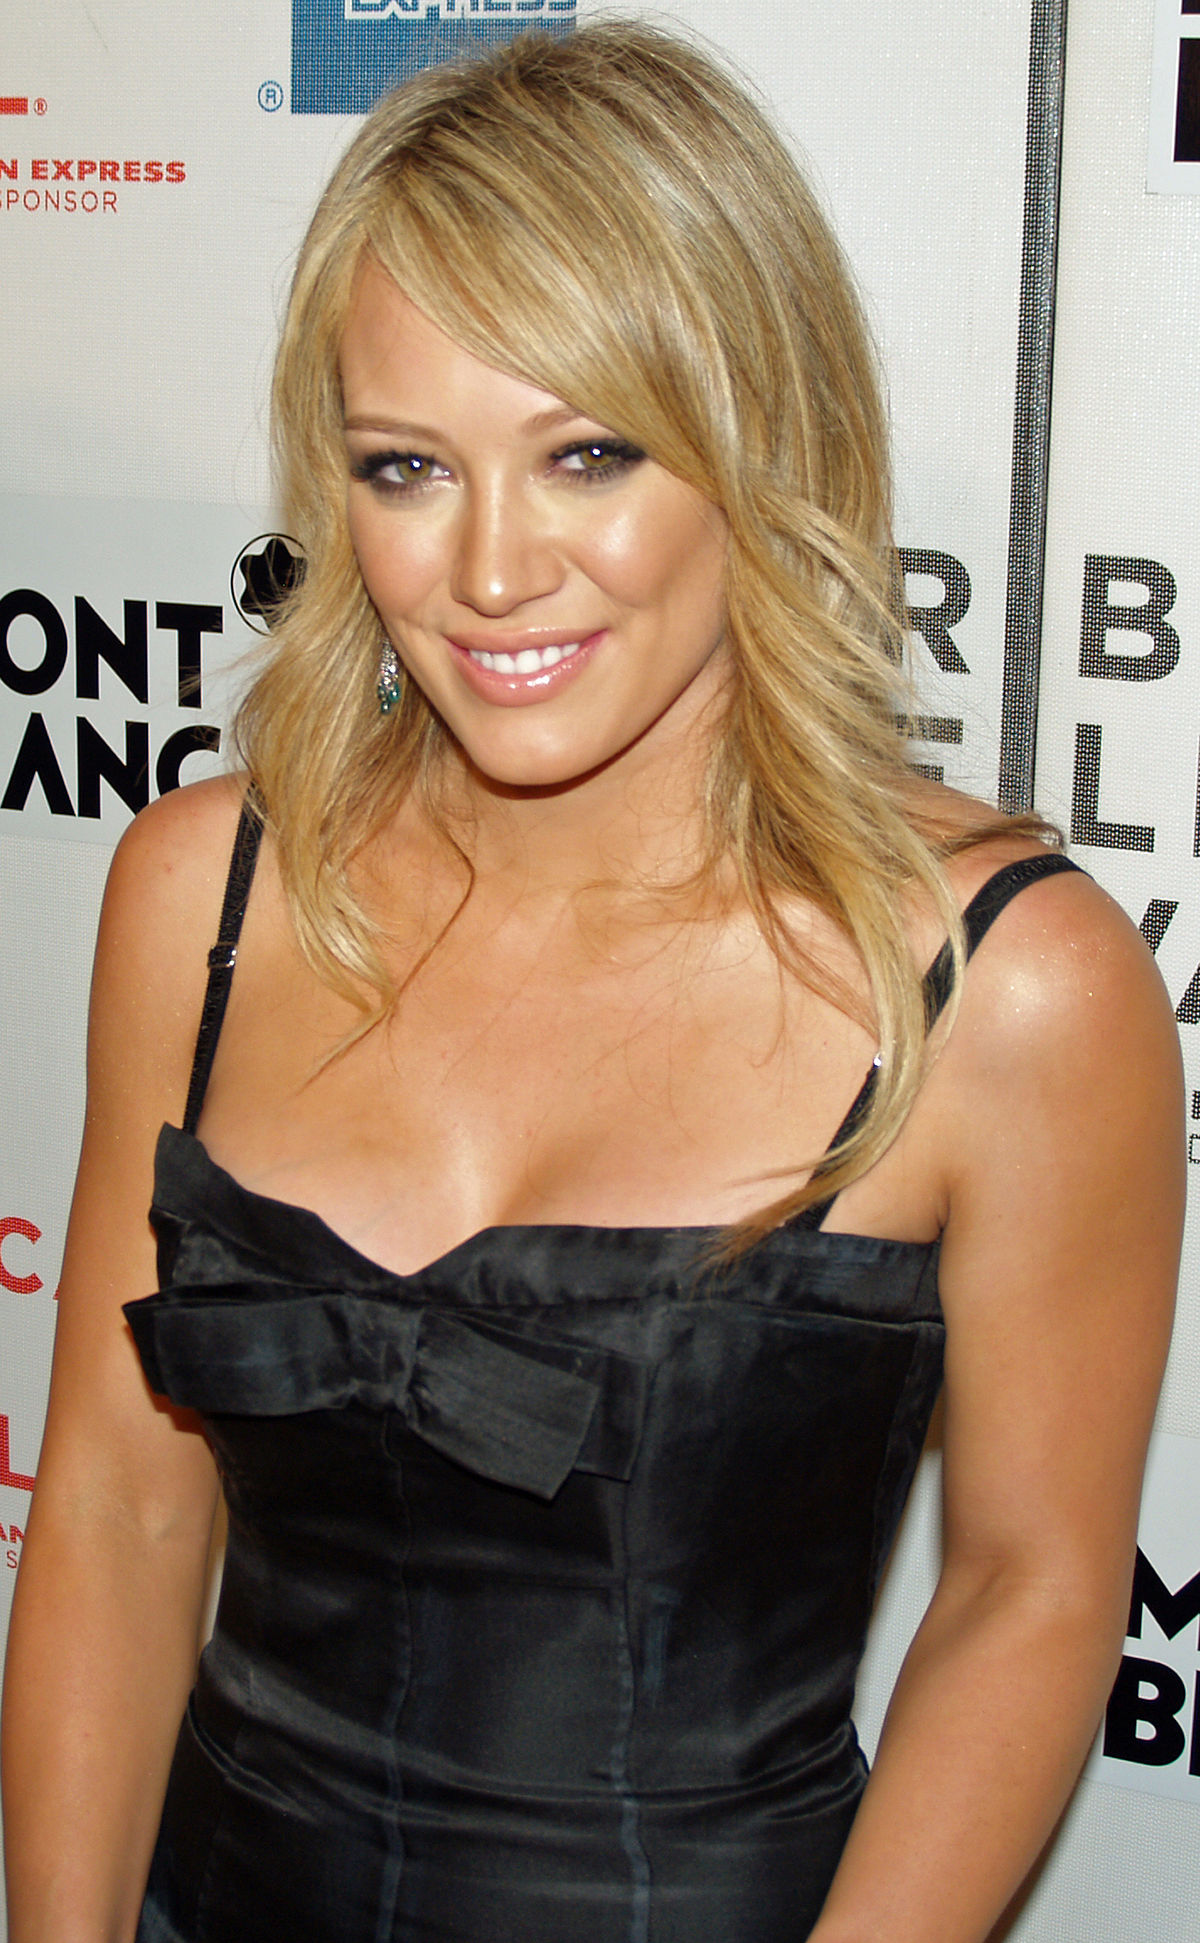 Hilary Duff - Wikipedia Hilary Duff